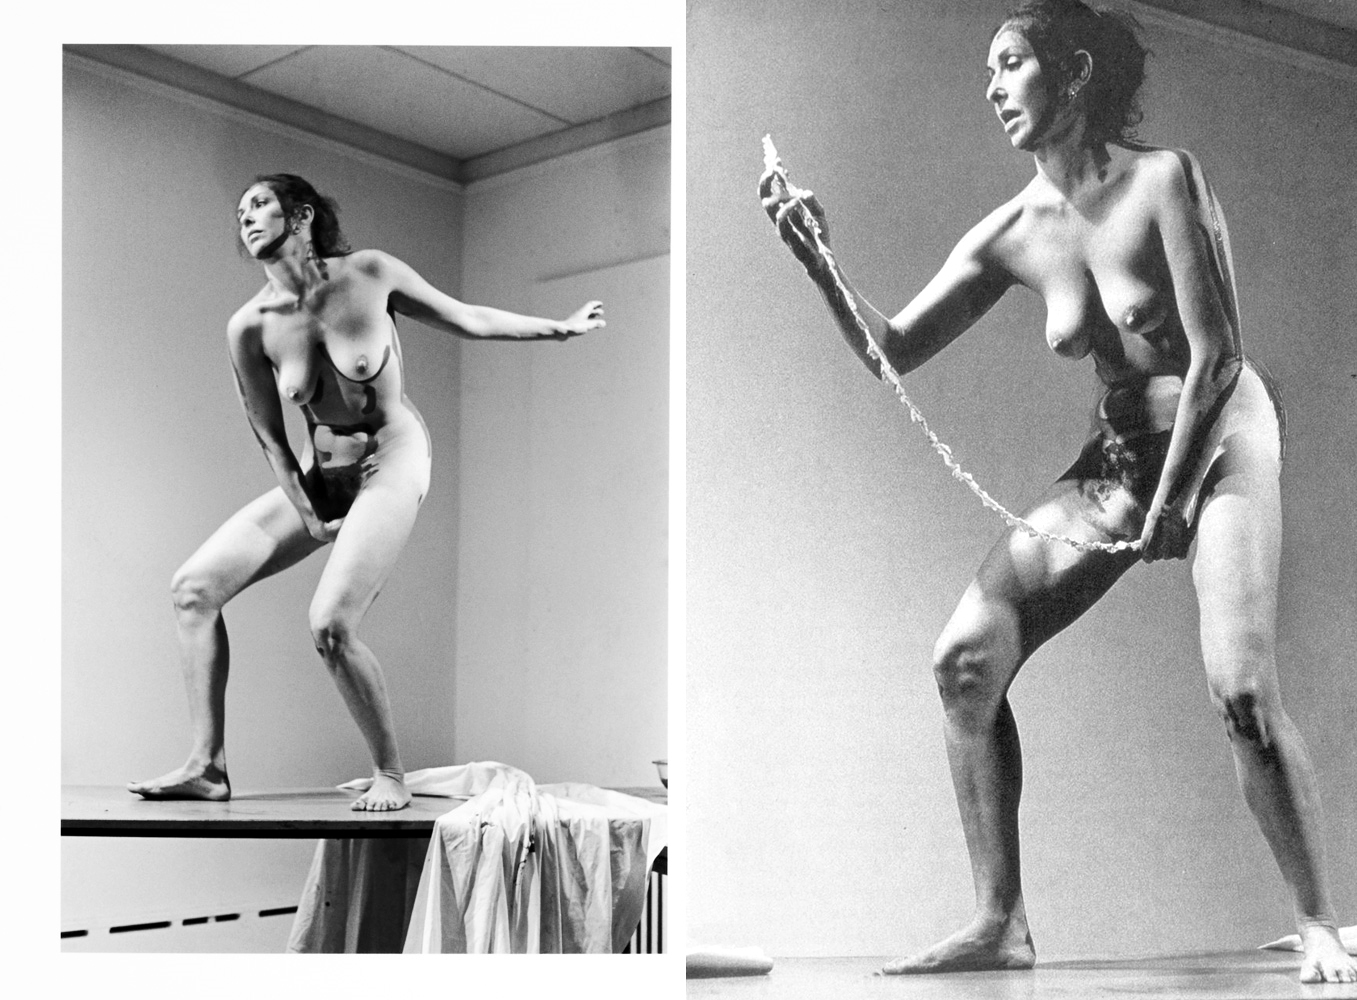 Carolee Schneeman pulling a scroll out of her vagina